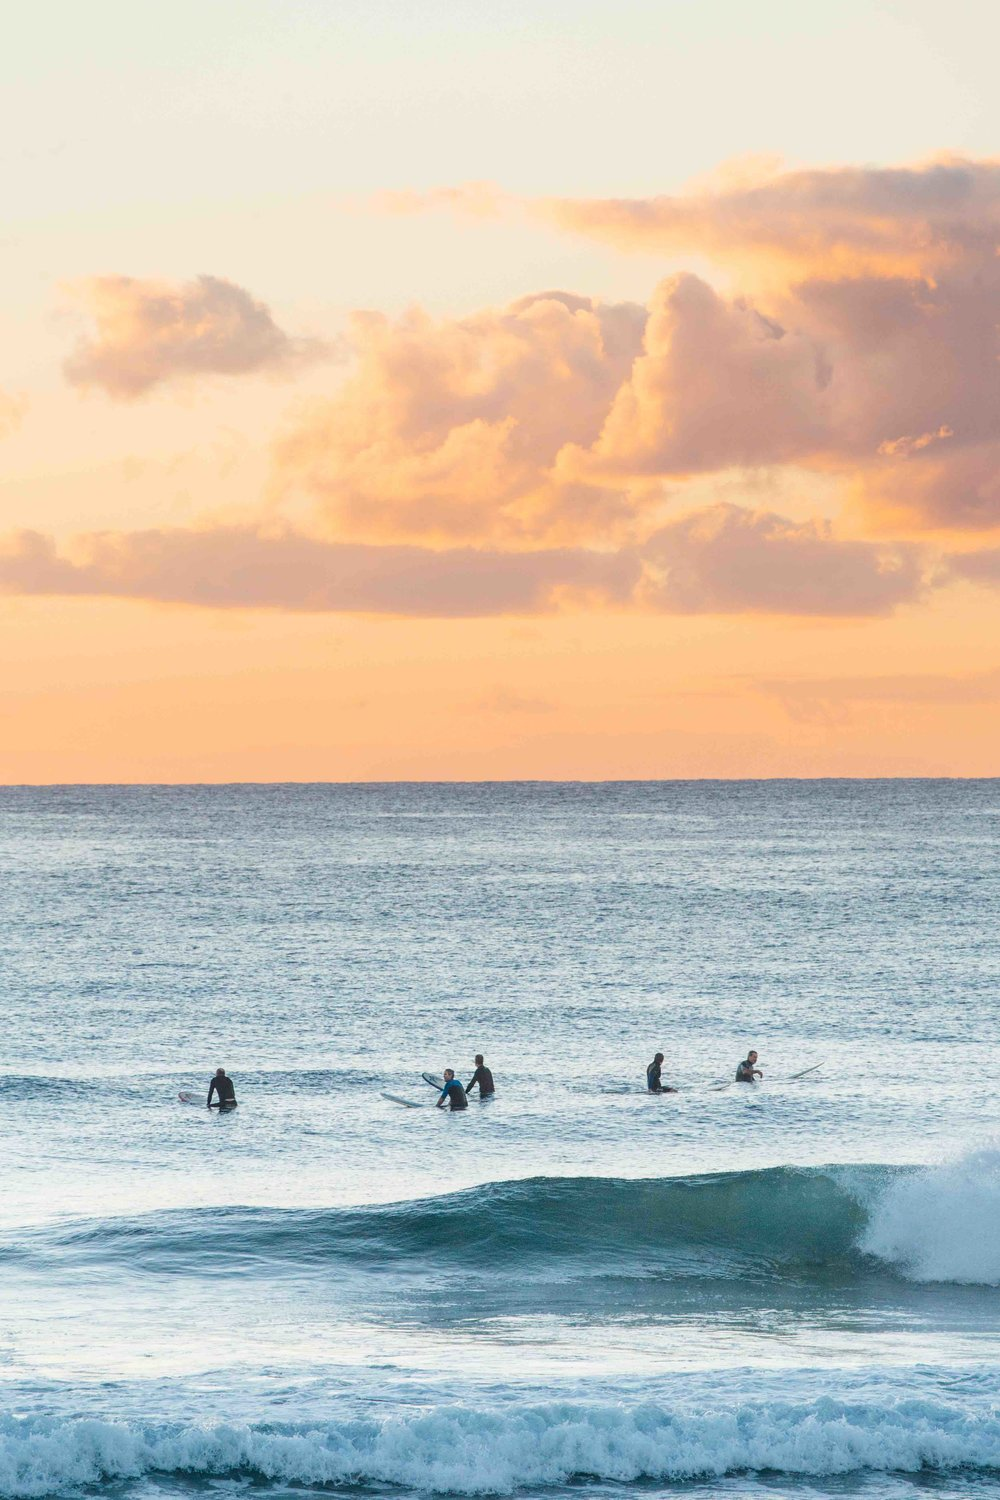 Sunrise surf in Manly Beach, Australia. Photo: Marine Raynard